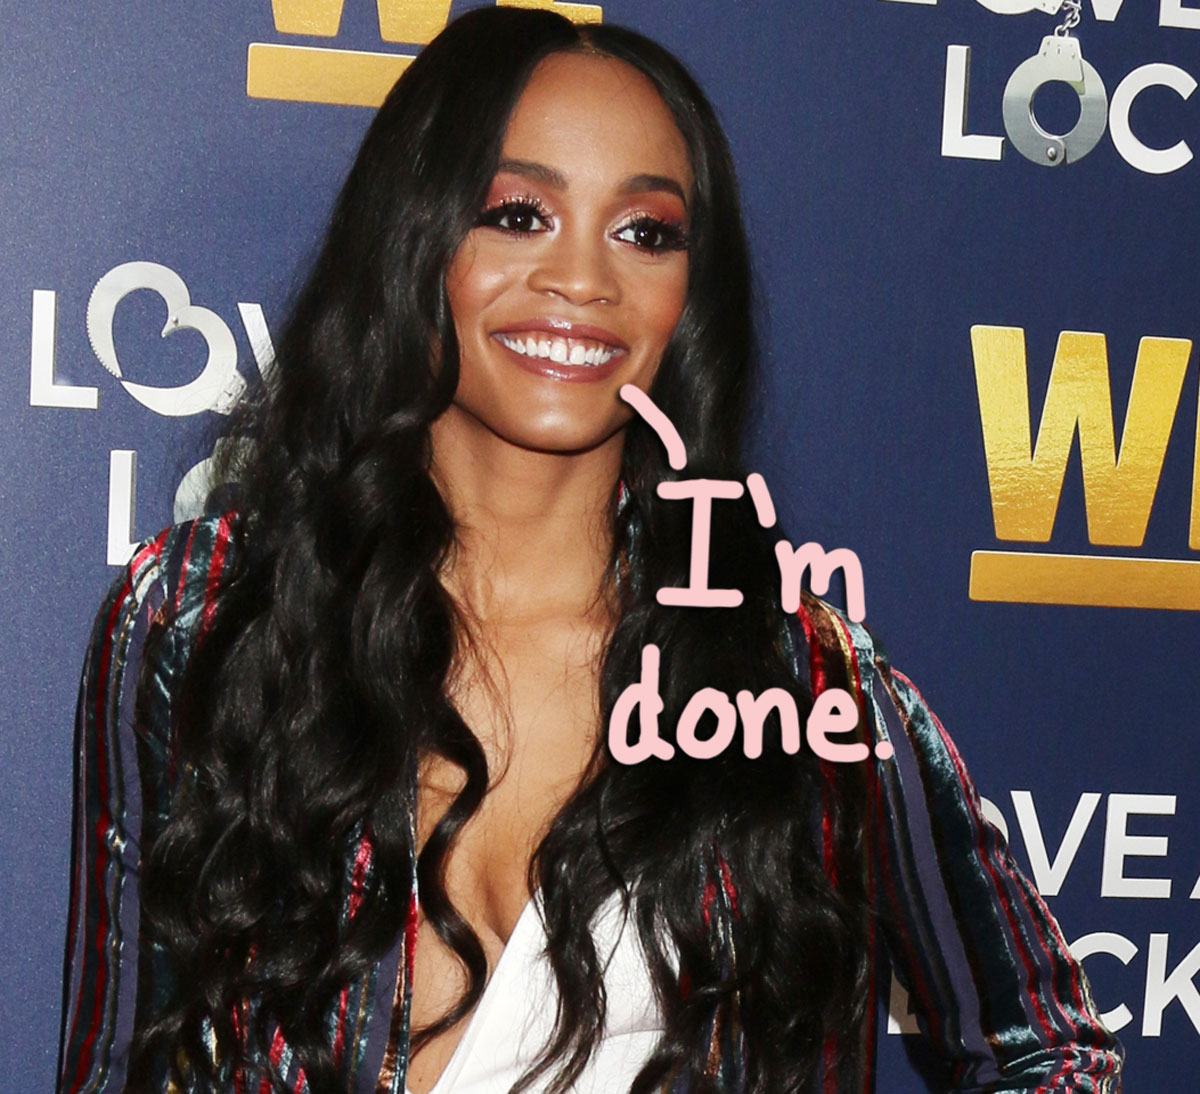 Rachel Lindsay Has Deleted Her Instagram Account Due To 'Hate She's Getting From Bachelor Fans'